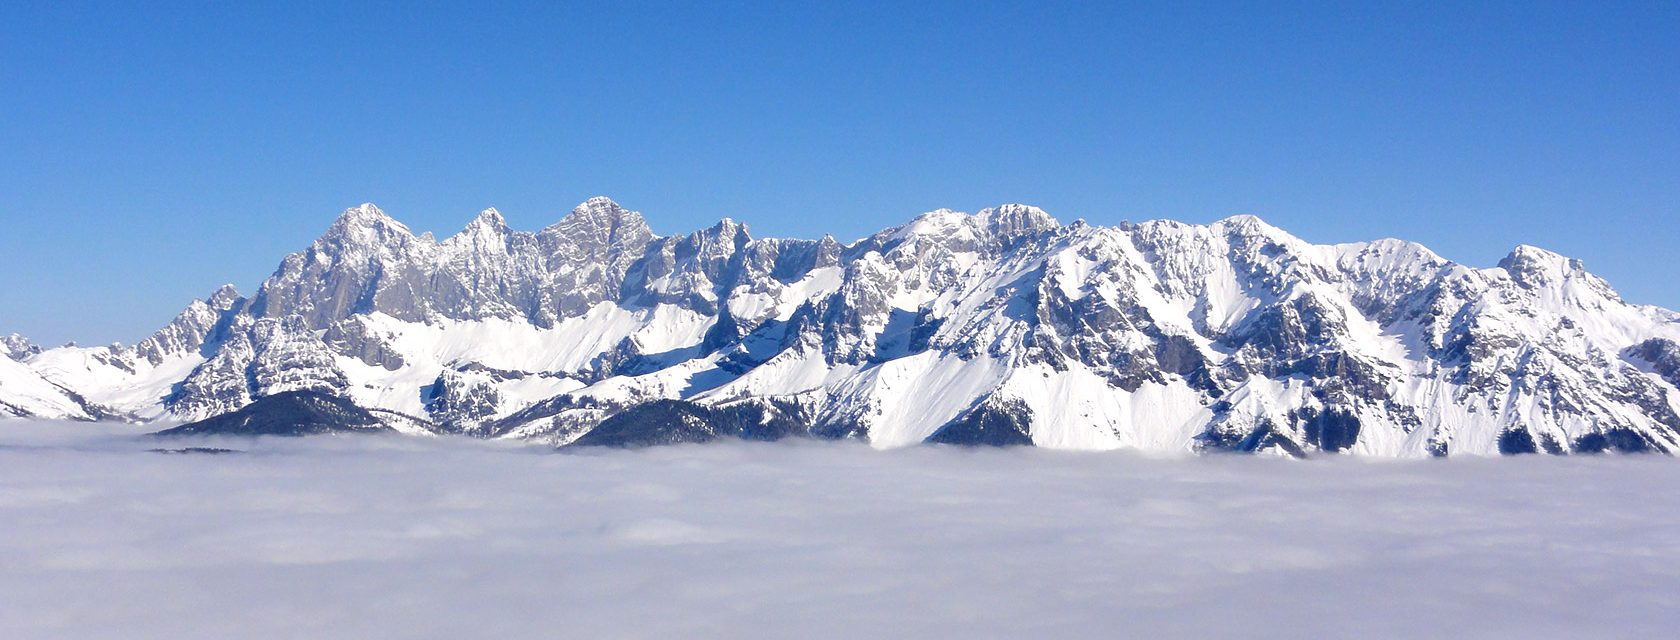 Dachstein Winter Panorama